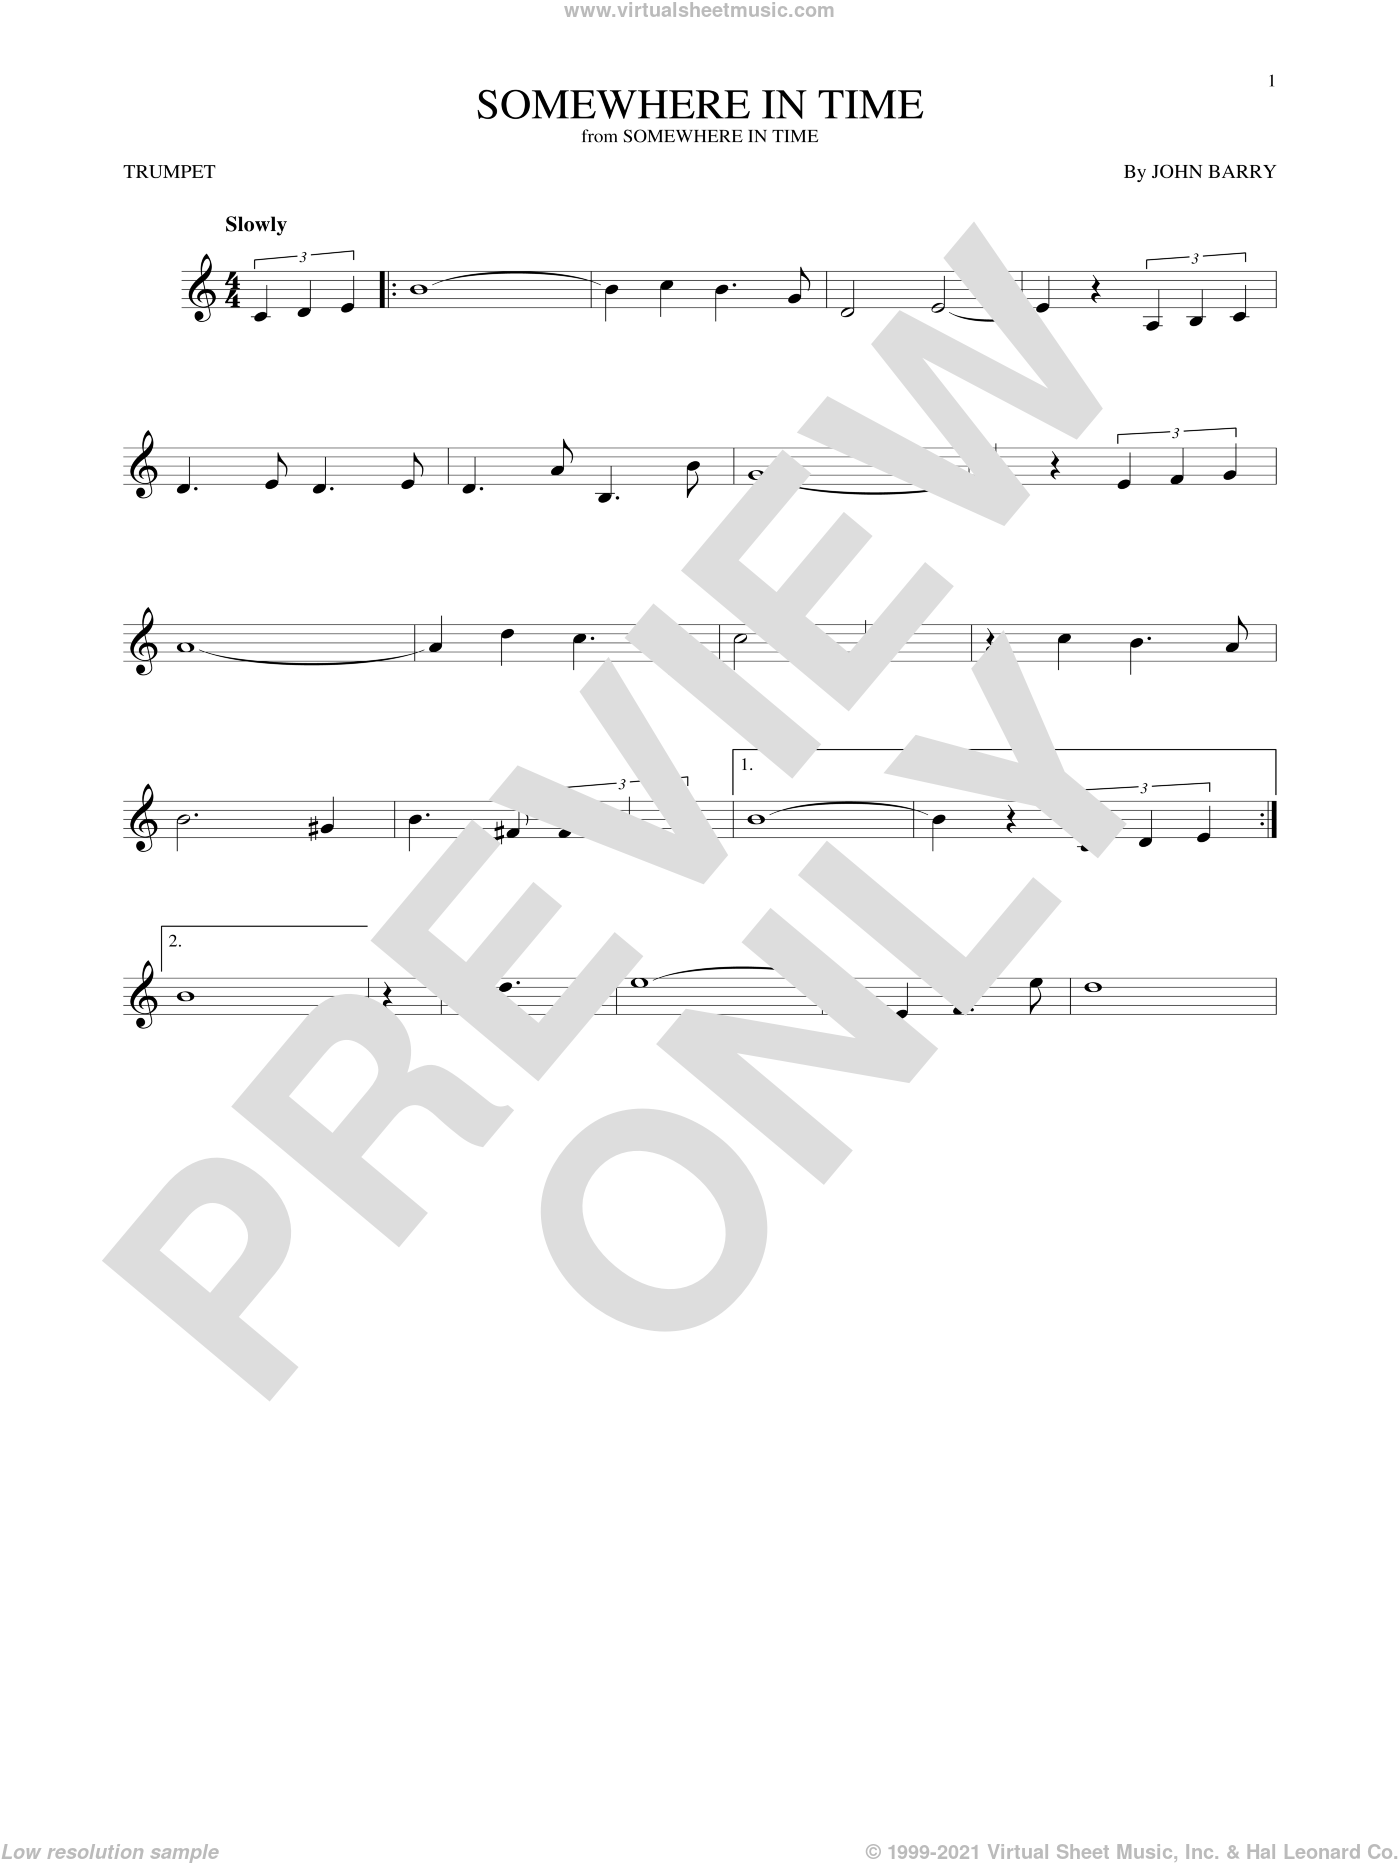 Somewhere In Time sheet music for trumpet solo by John Barry and B.A. Robertson, intermediate skill level